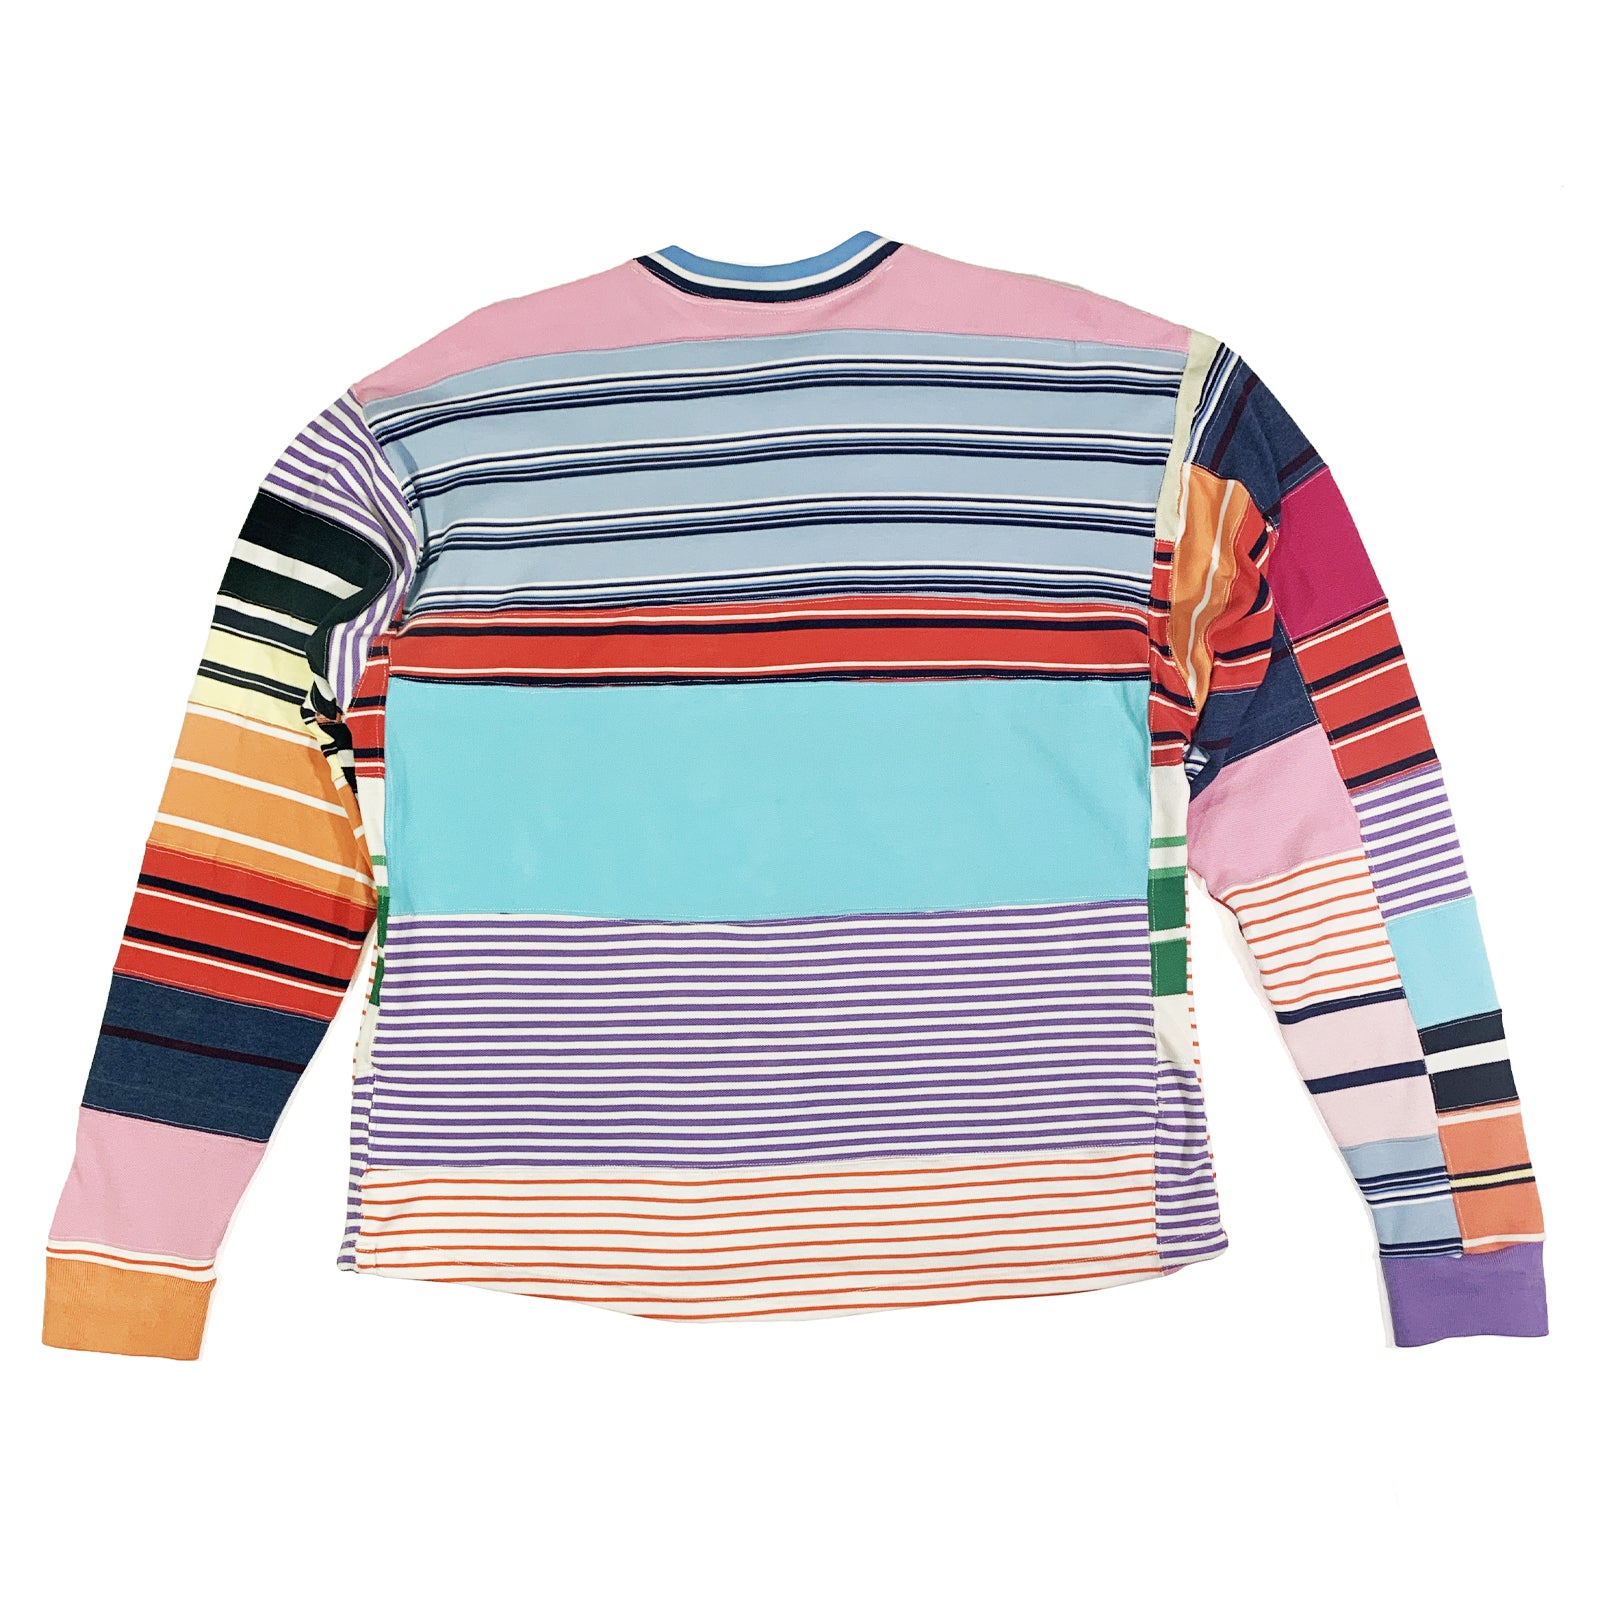 "BANDULU "" STRIPES "" UPCYCLED RALPH LONGSLEEVE LARGE"